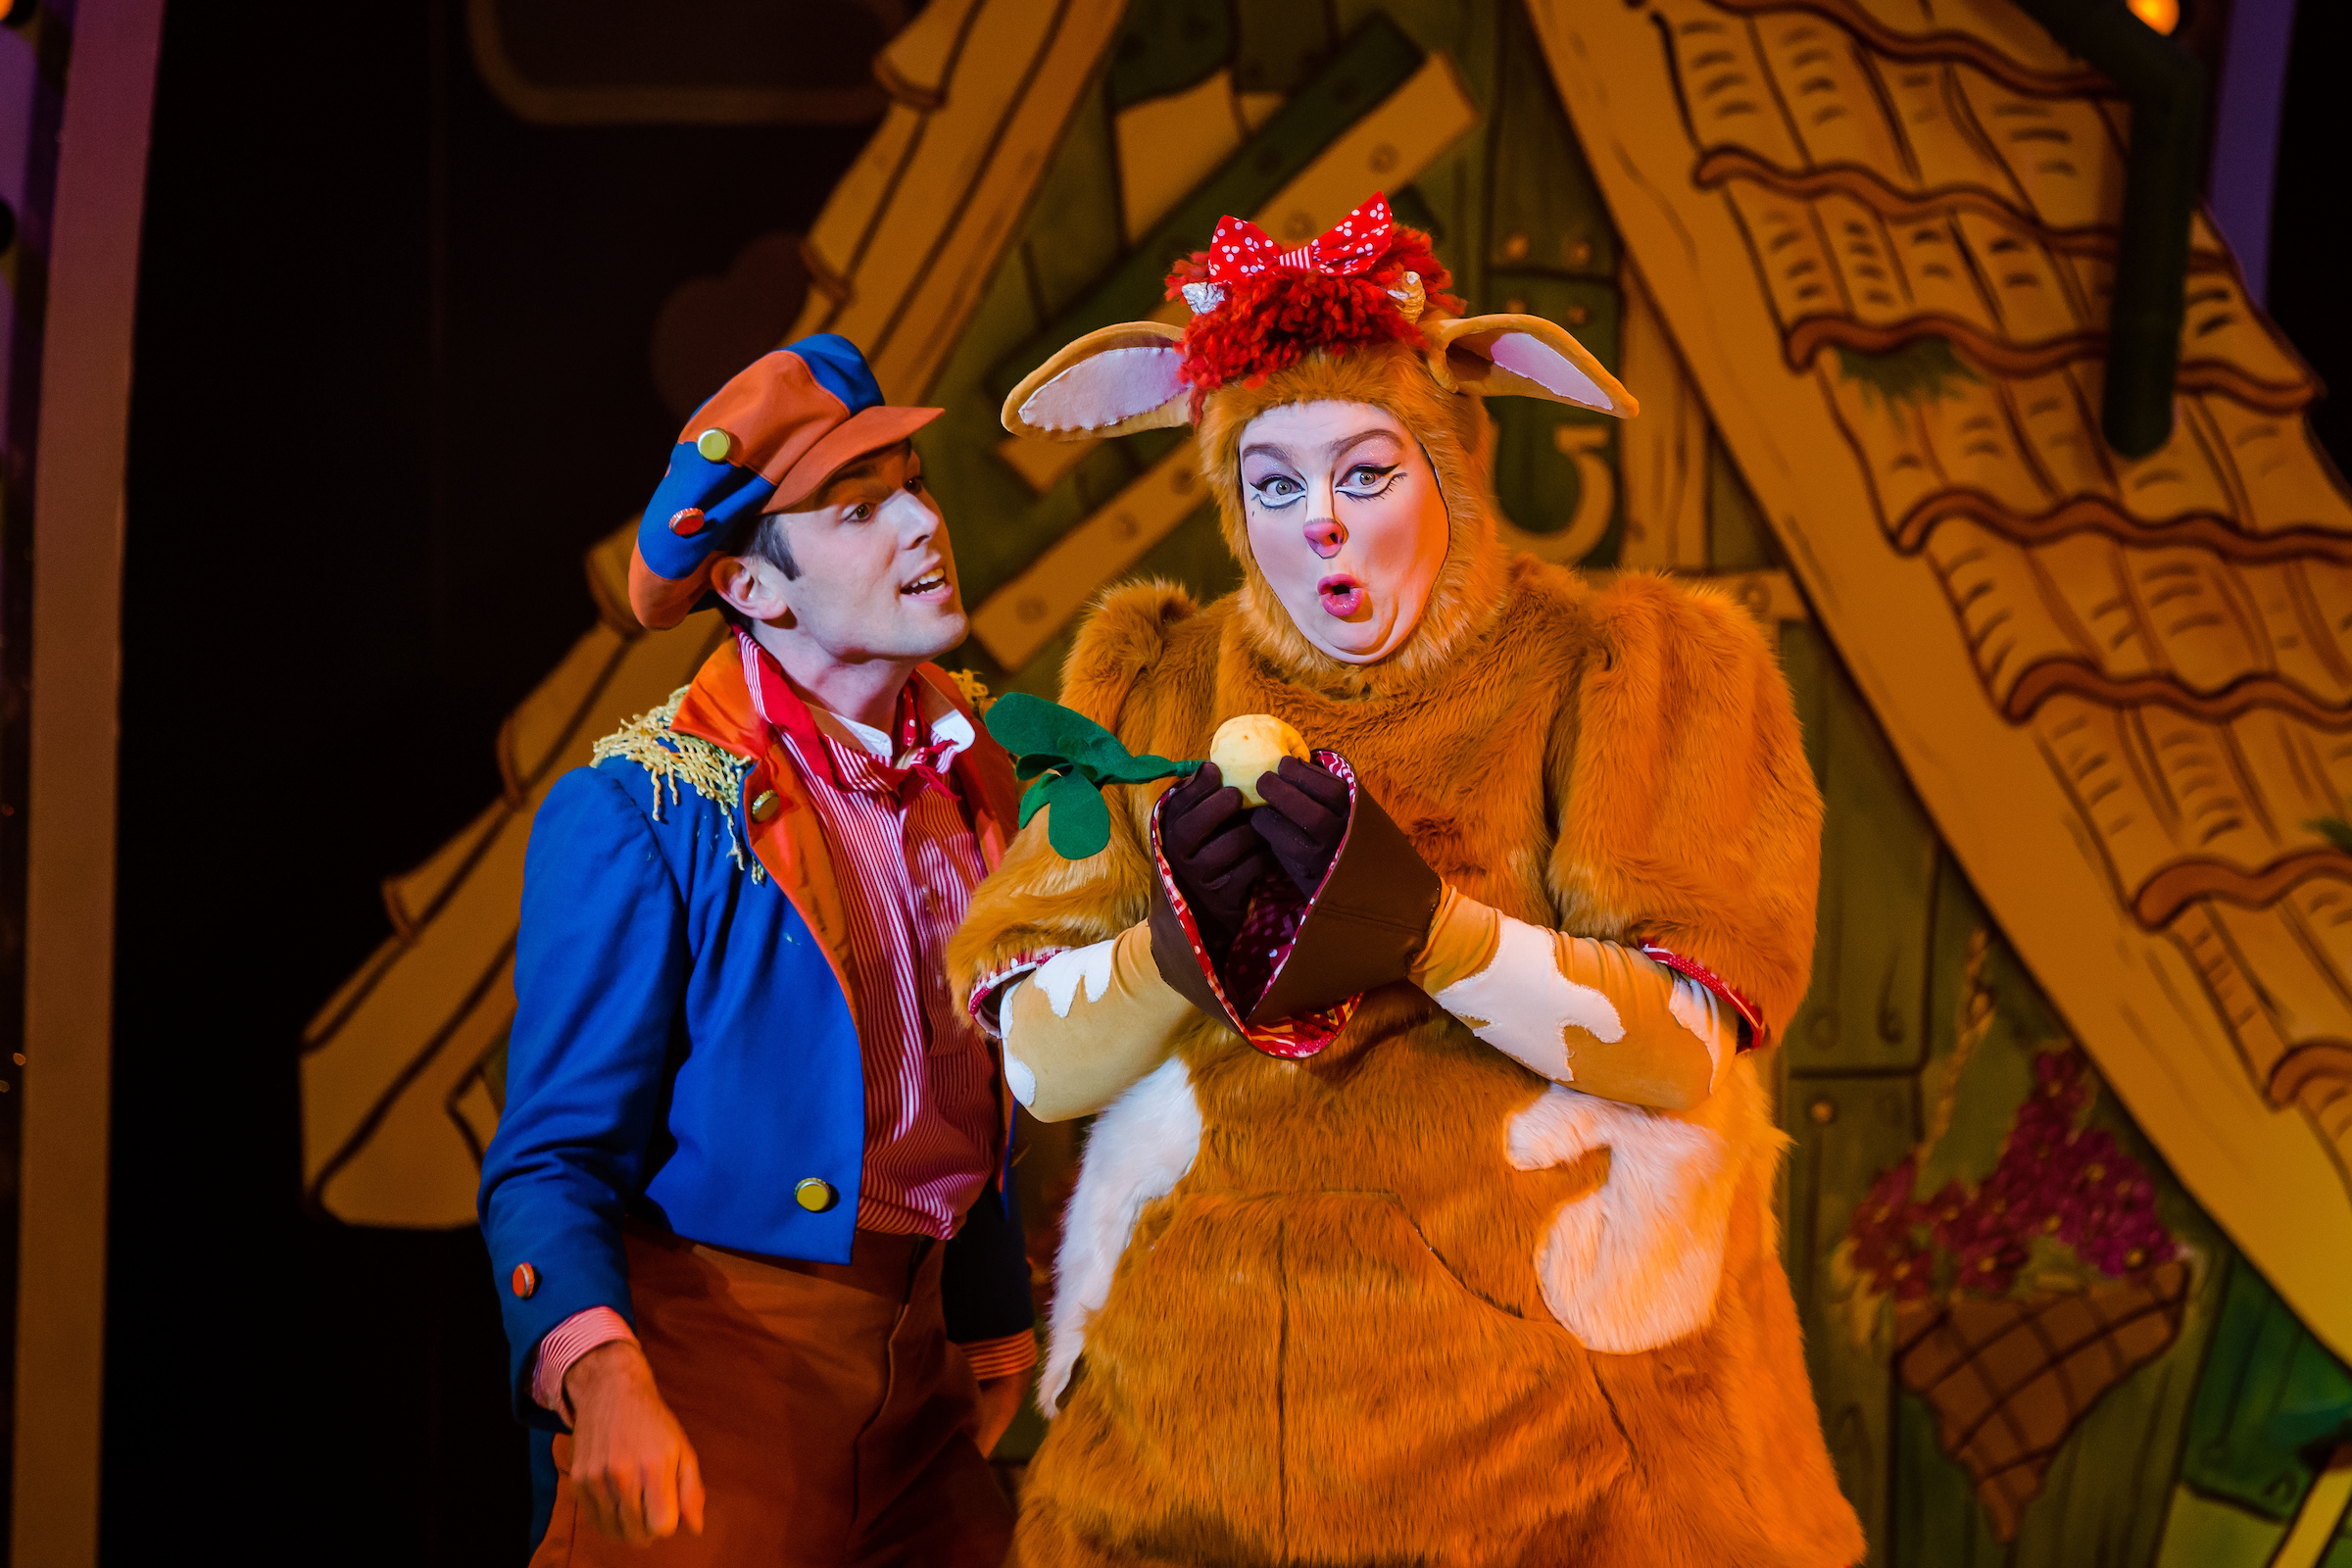 Sam Harrison as Jack and Laura Crowhurst as Pat the Cow in Jack & the Beanstalk Photo026.jpg